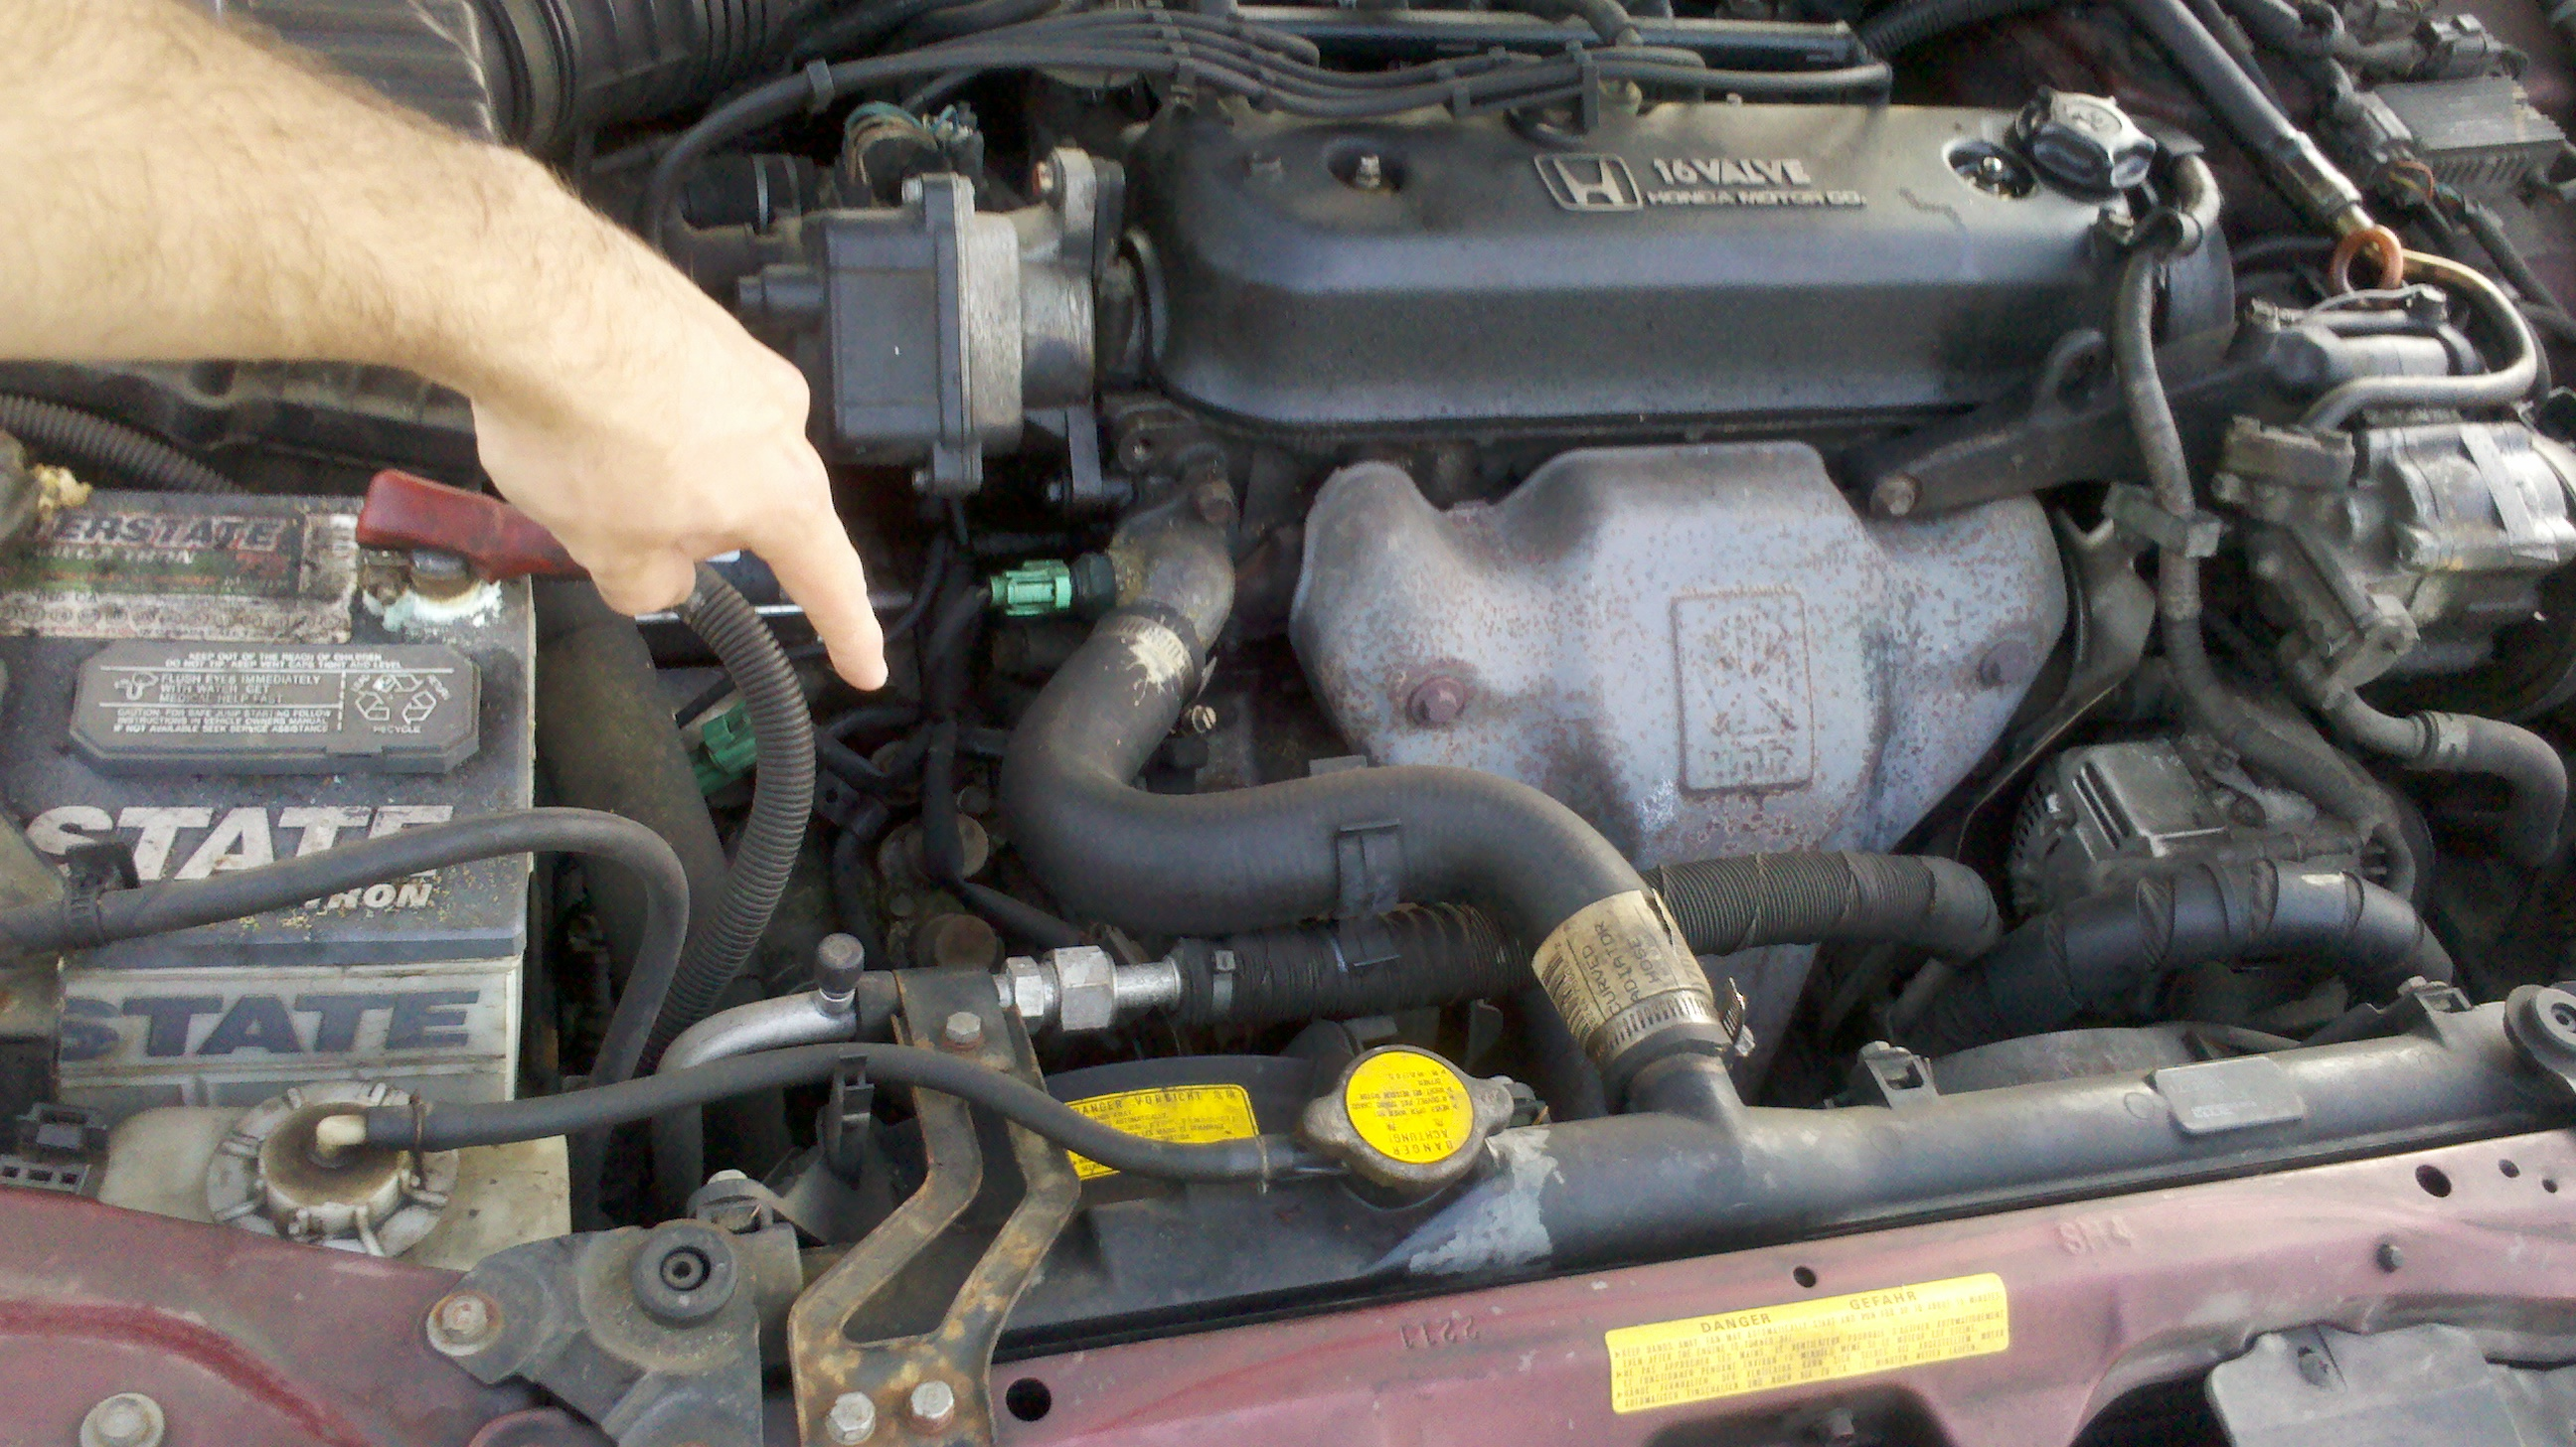 arrmani general radiator worth honda things stopleak supposed pour bucks lose cheap pretty hole work seal online brand easy super busted auto radiatorhose replacing hour tops autozone buckseven cheaper